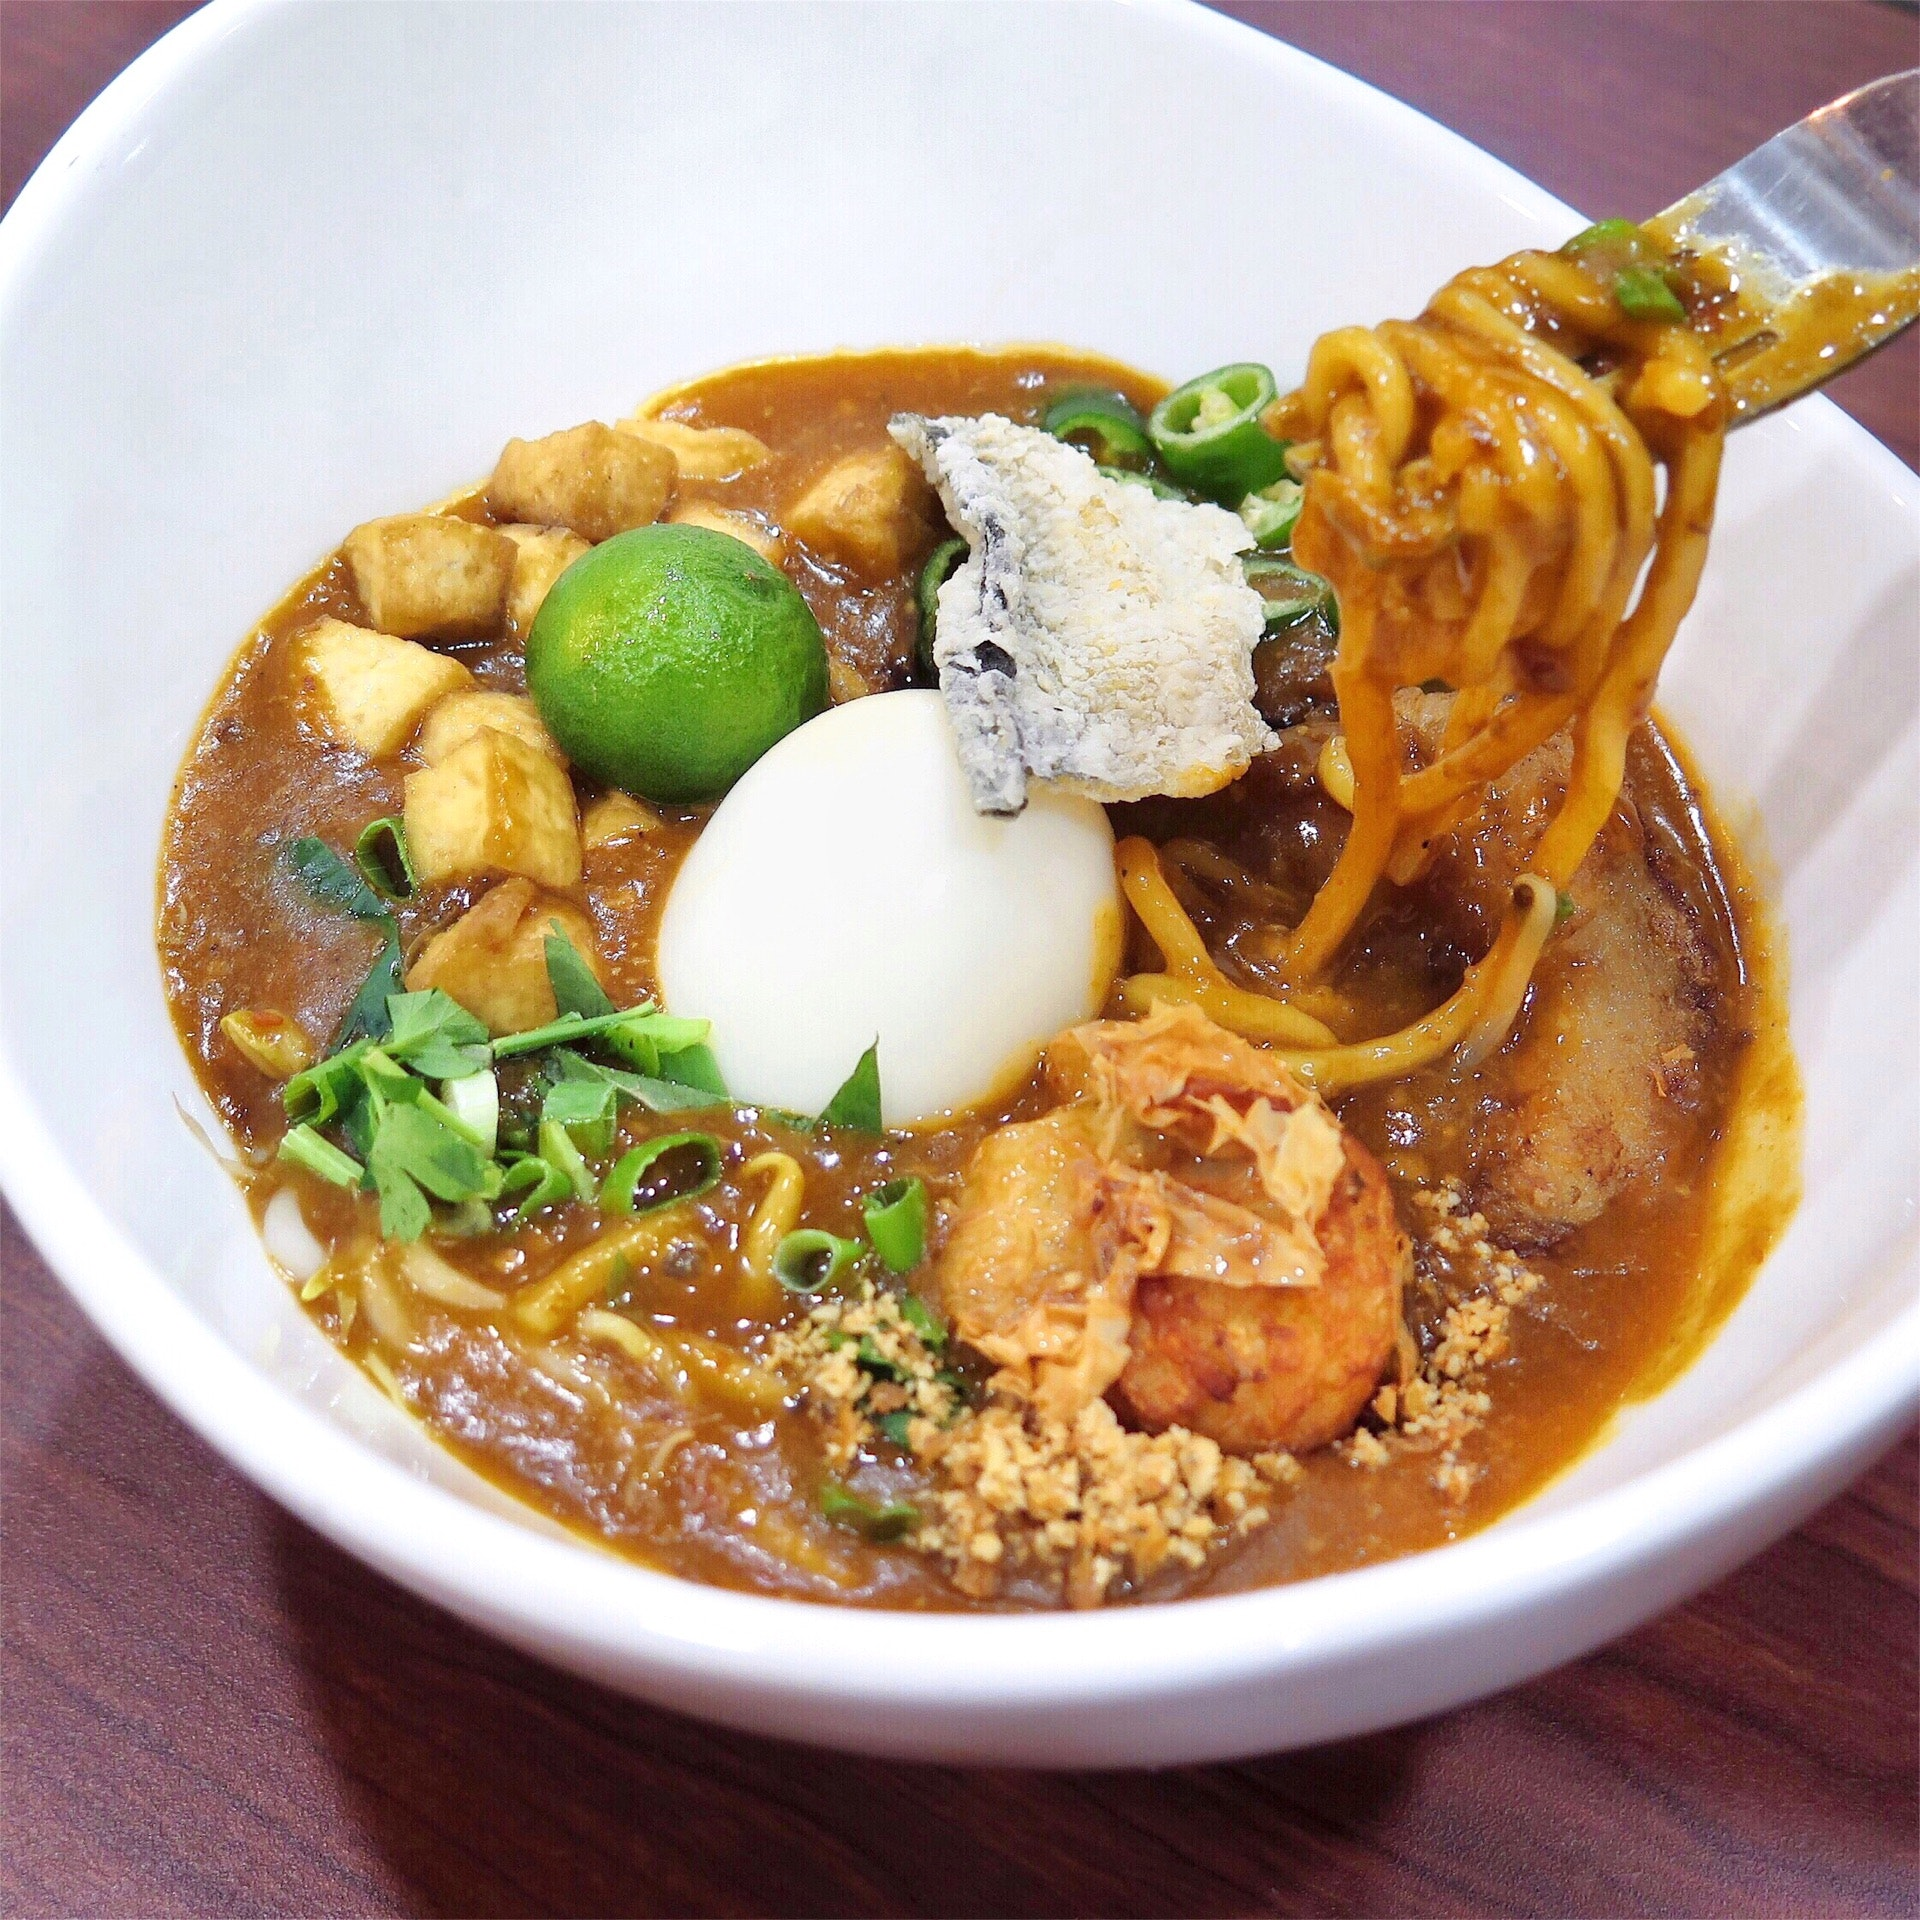 For Affordable Indonesian Fare